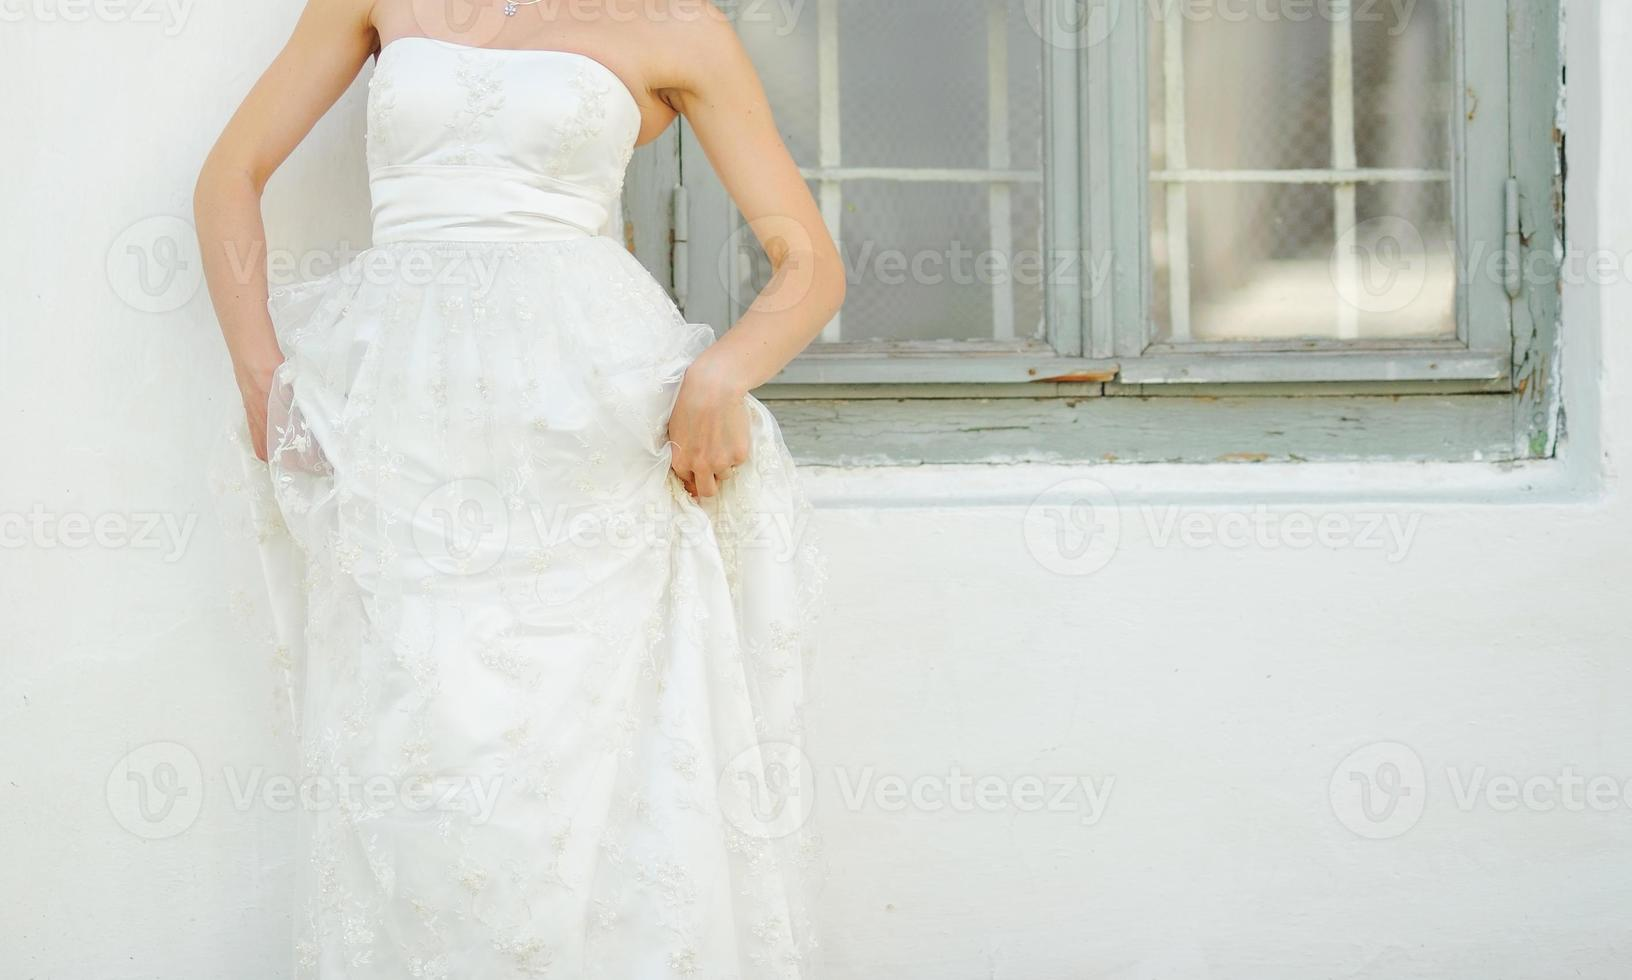 Caucasian bride on wedding day. photo